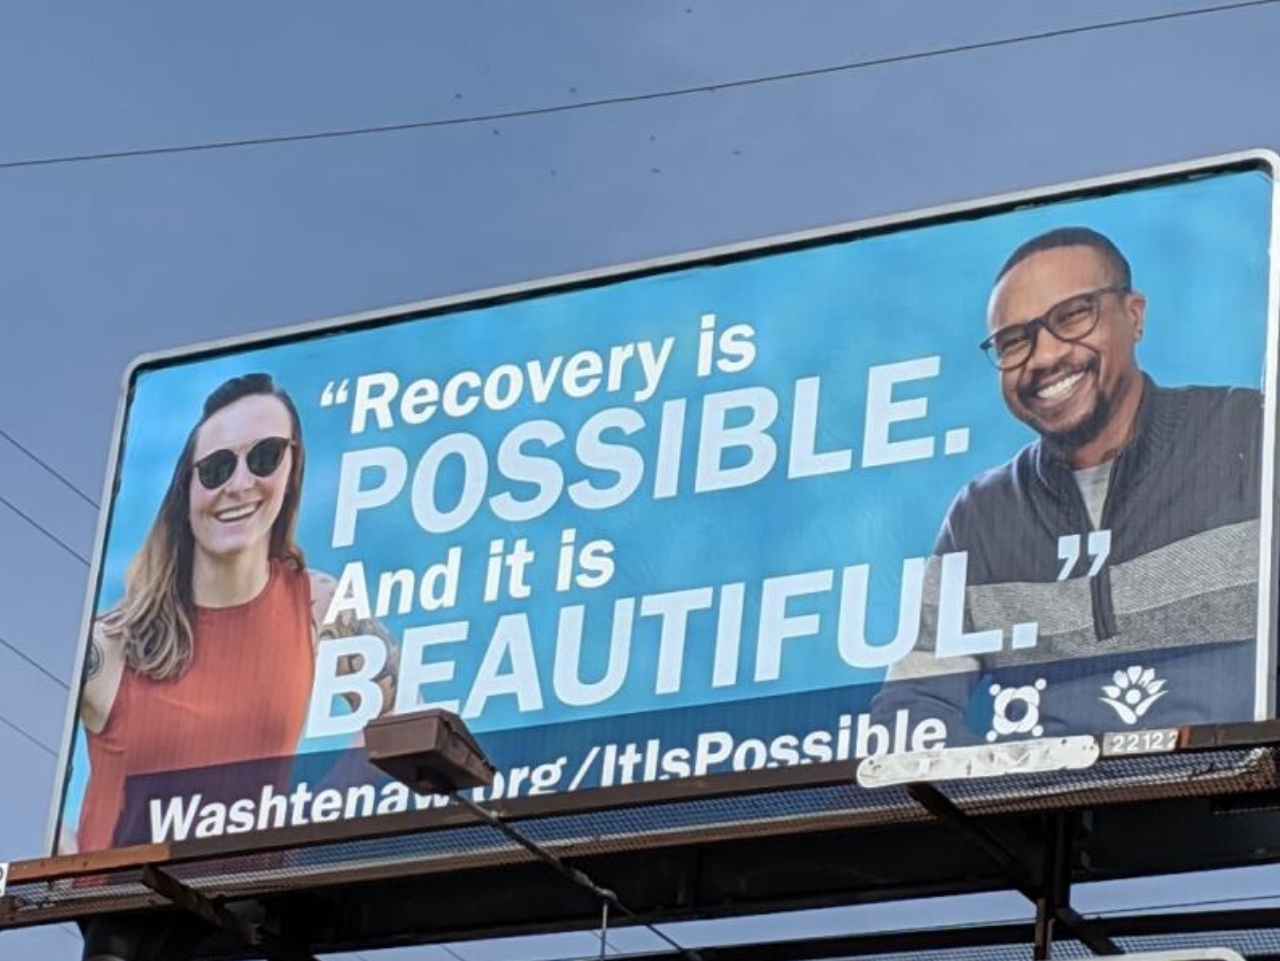 it is possible billboard